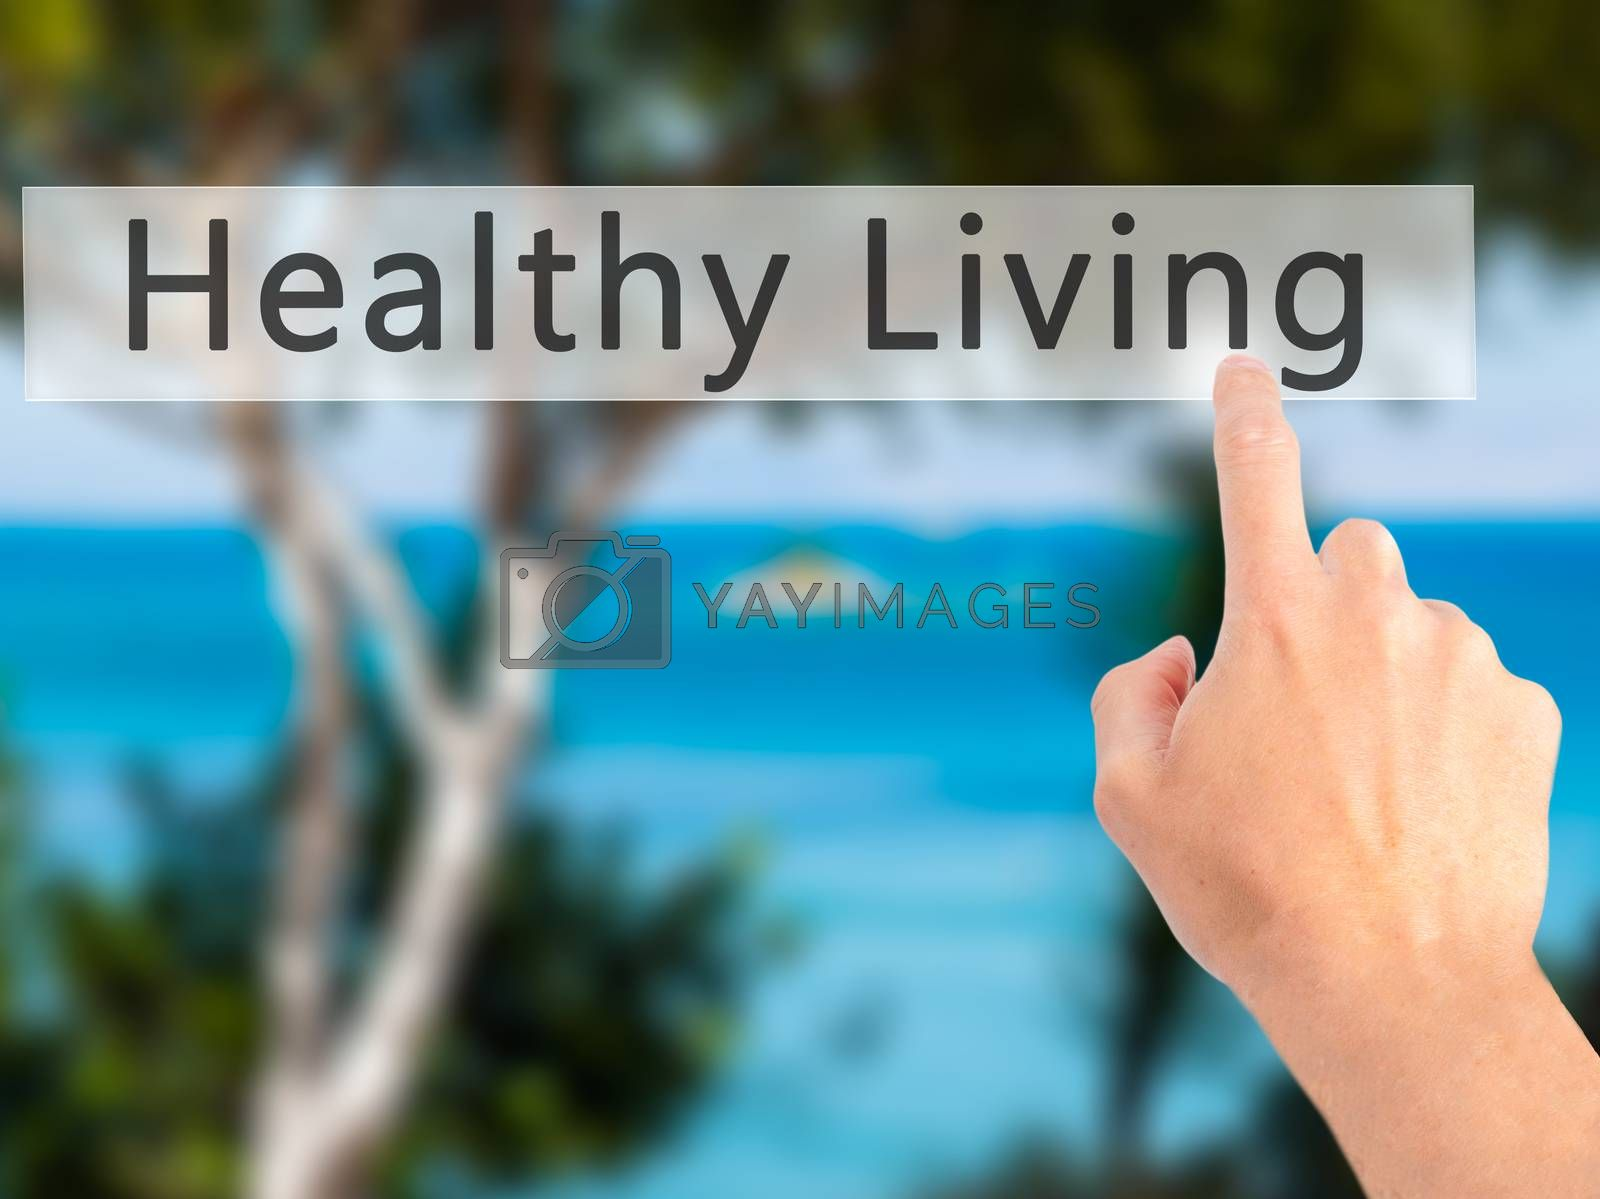 Healthy Living - Hand pressing a button on blurred background co by jackald